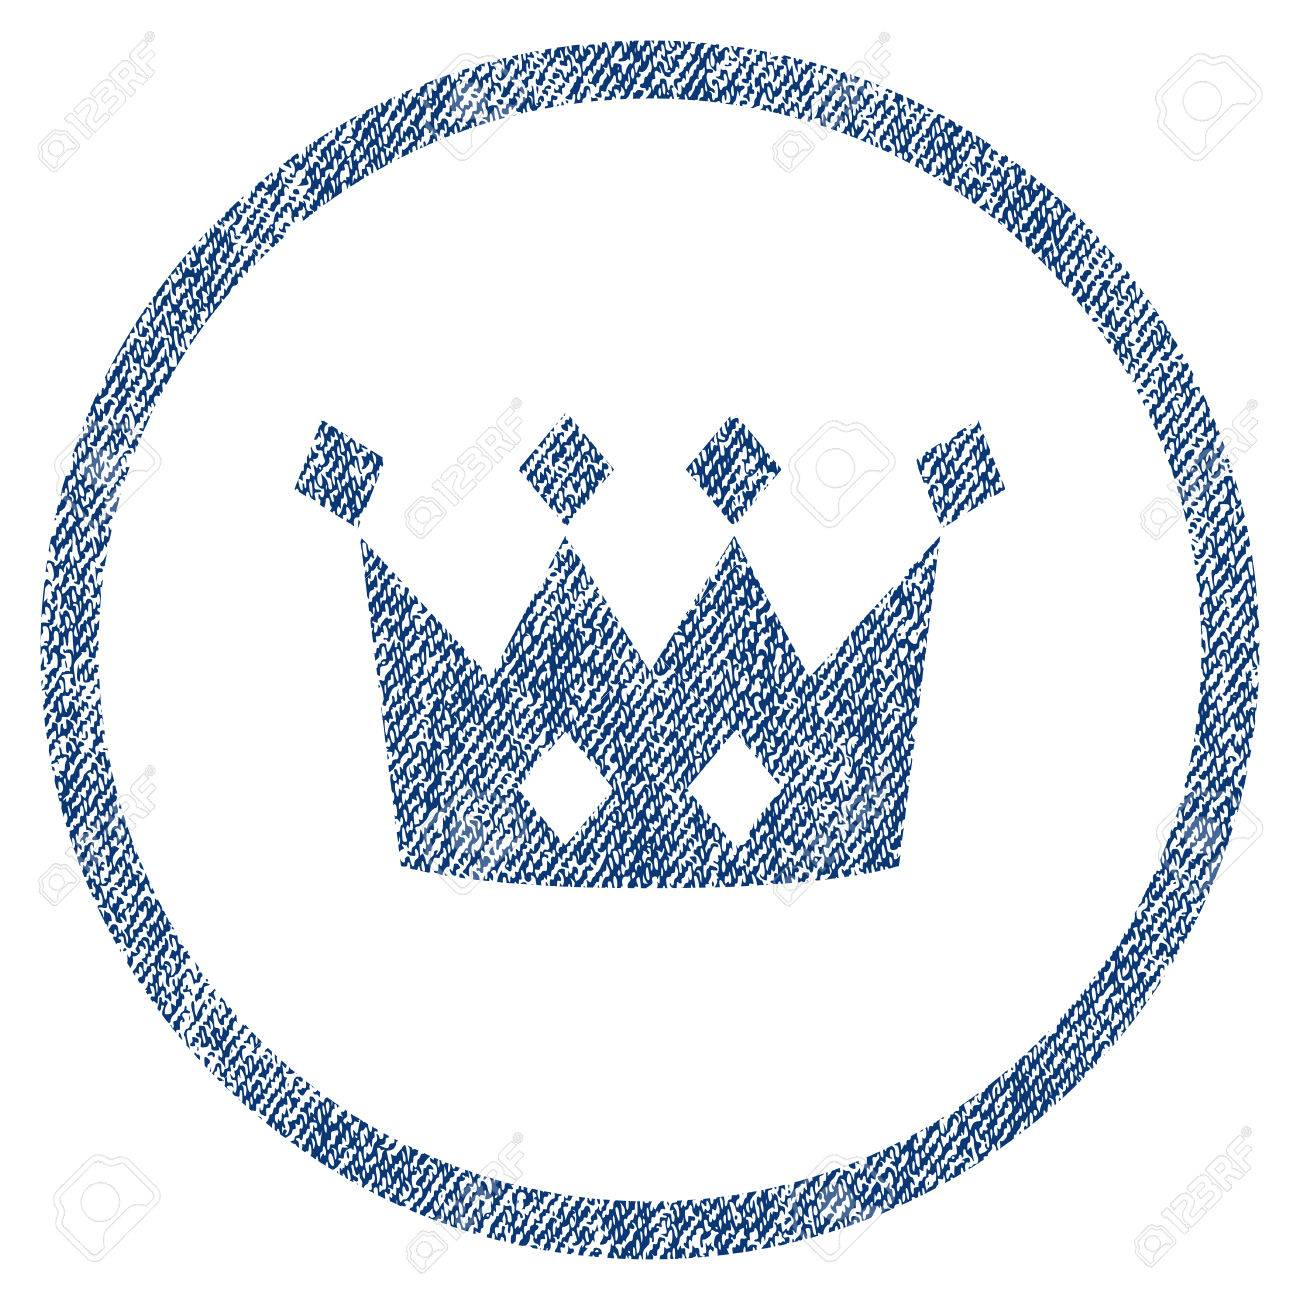 Crown Textured Icon For Overlay Watermark Stamps Blue Jeans Fabric Vectorized Texture Rounded Flat